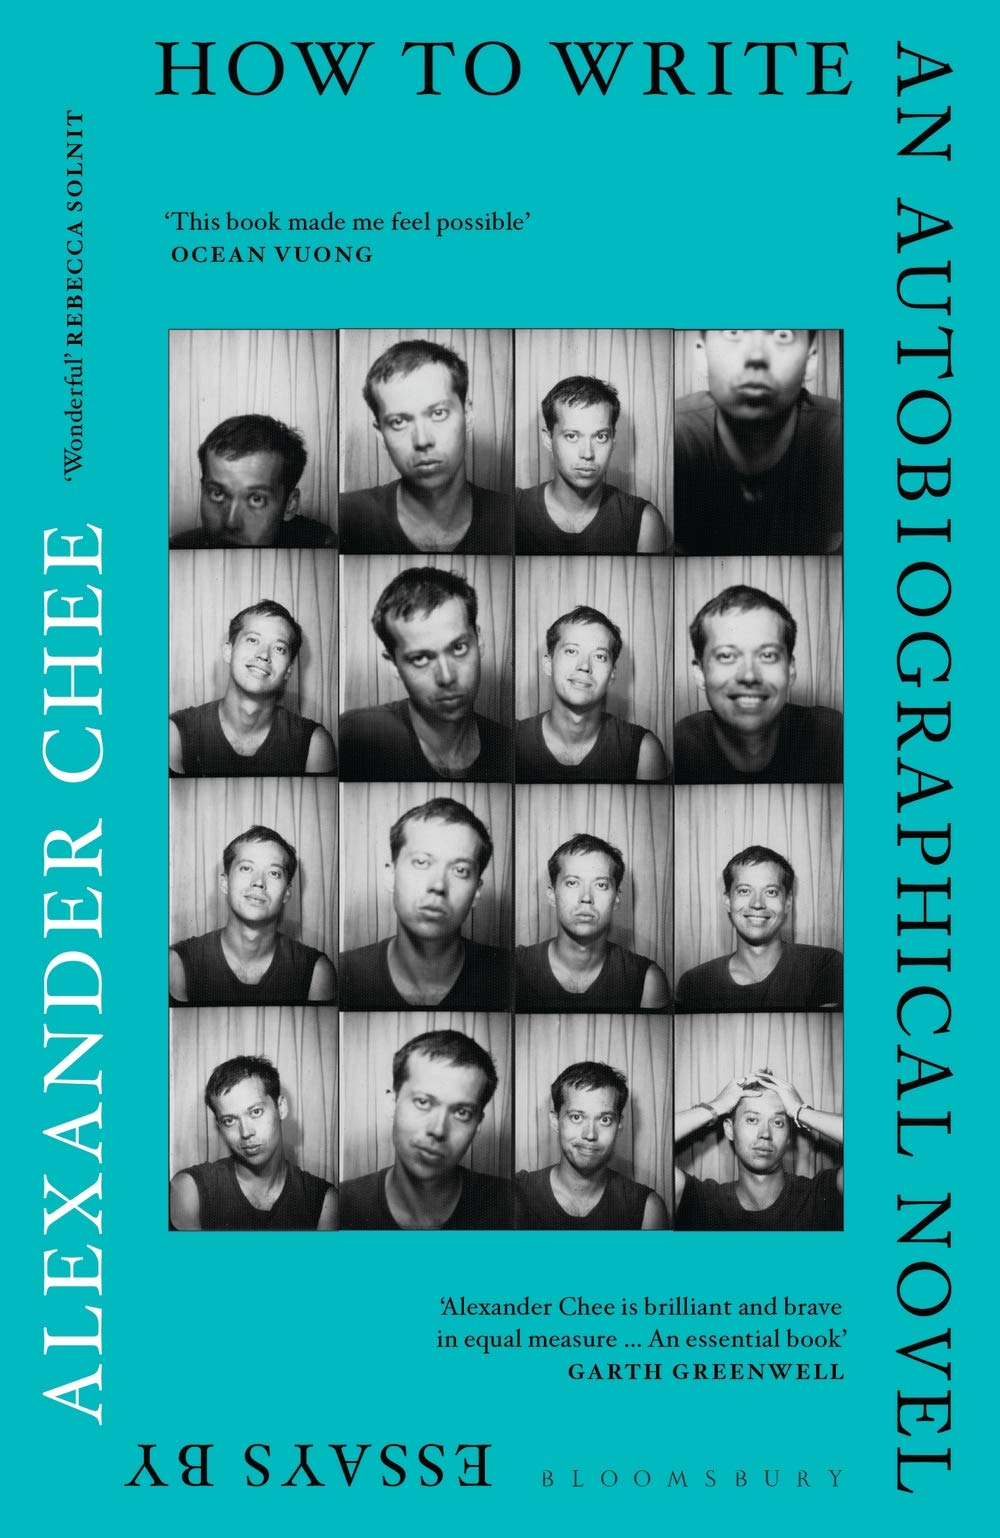 How To Write An Autbiographical Novel by Alexander Chee